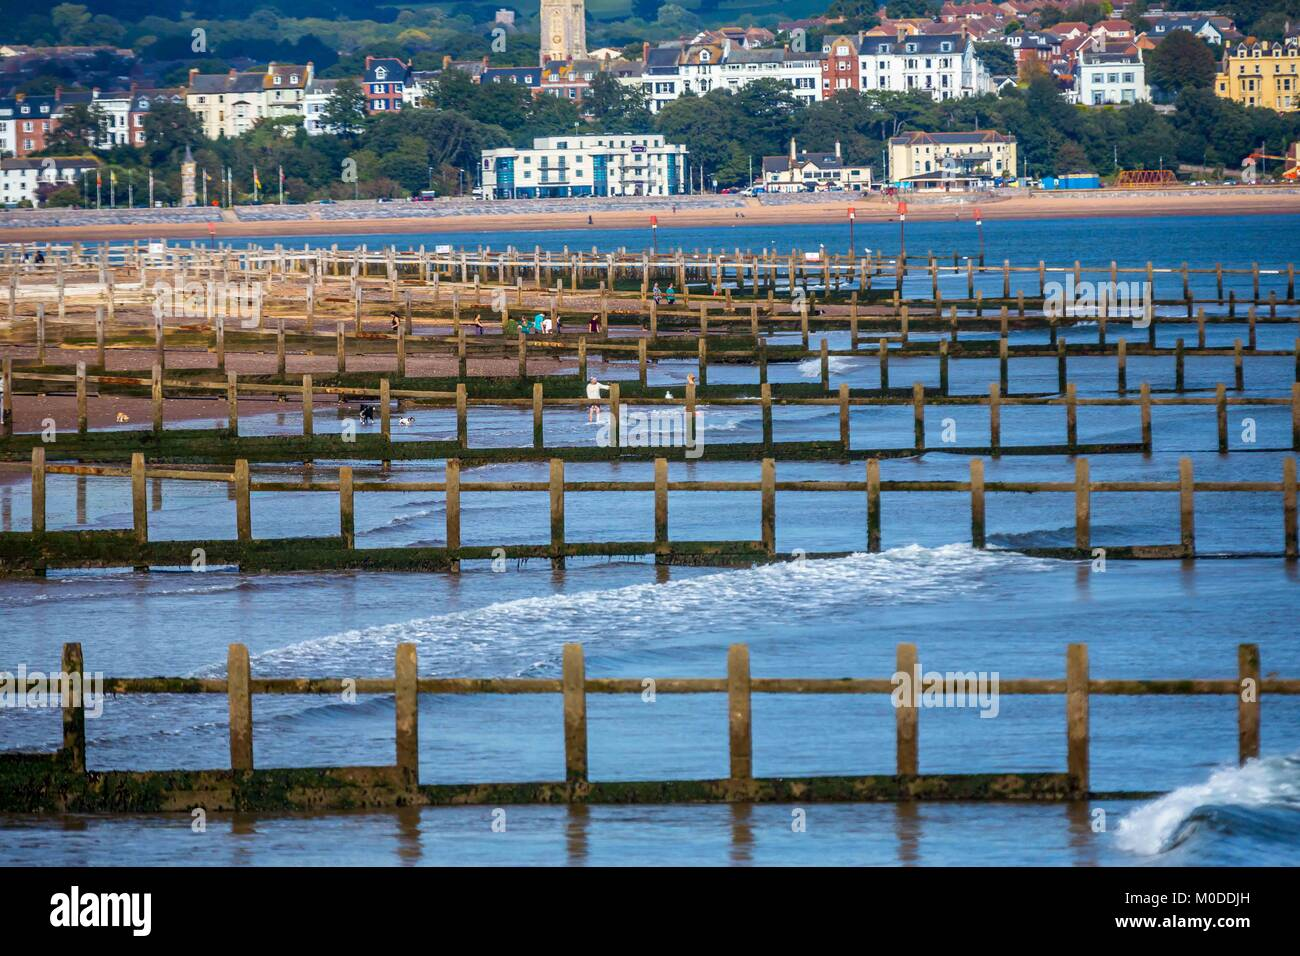 Man-made beach and shore groins protecting the english coastline in Devon. - Stock Image